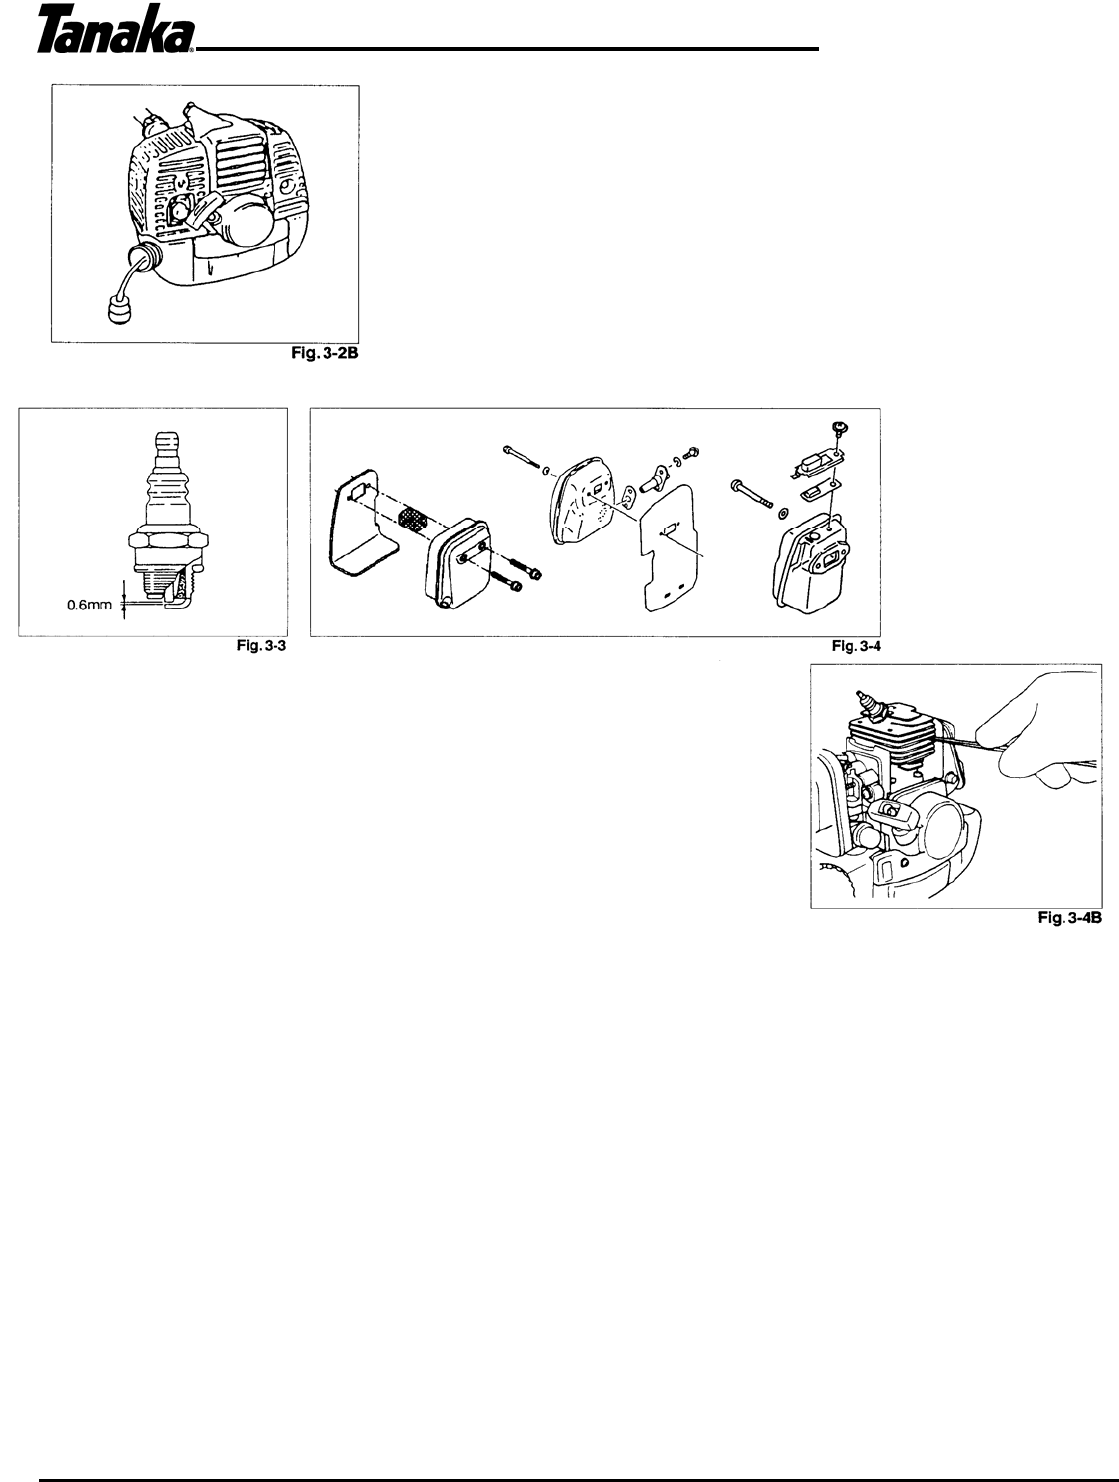 Page 14 of Tanaka Brush Cutter TBC-2501 User Guide